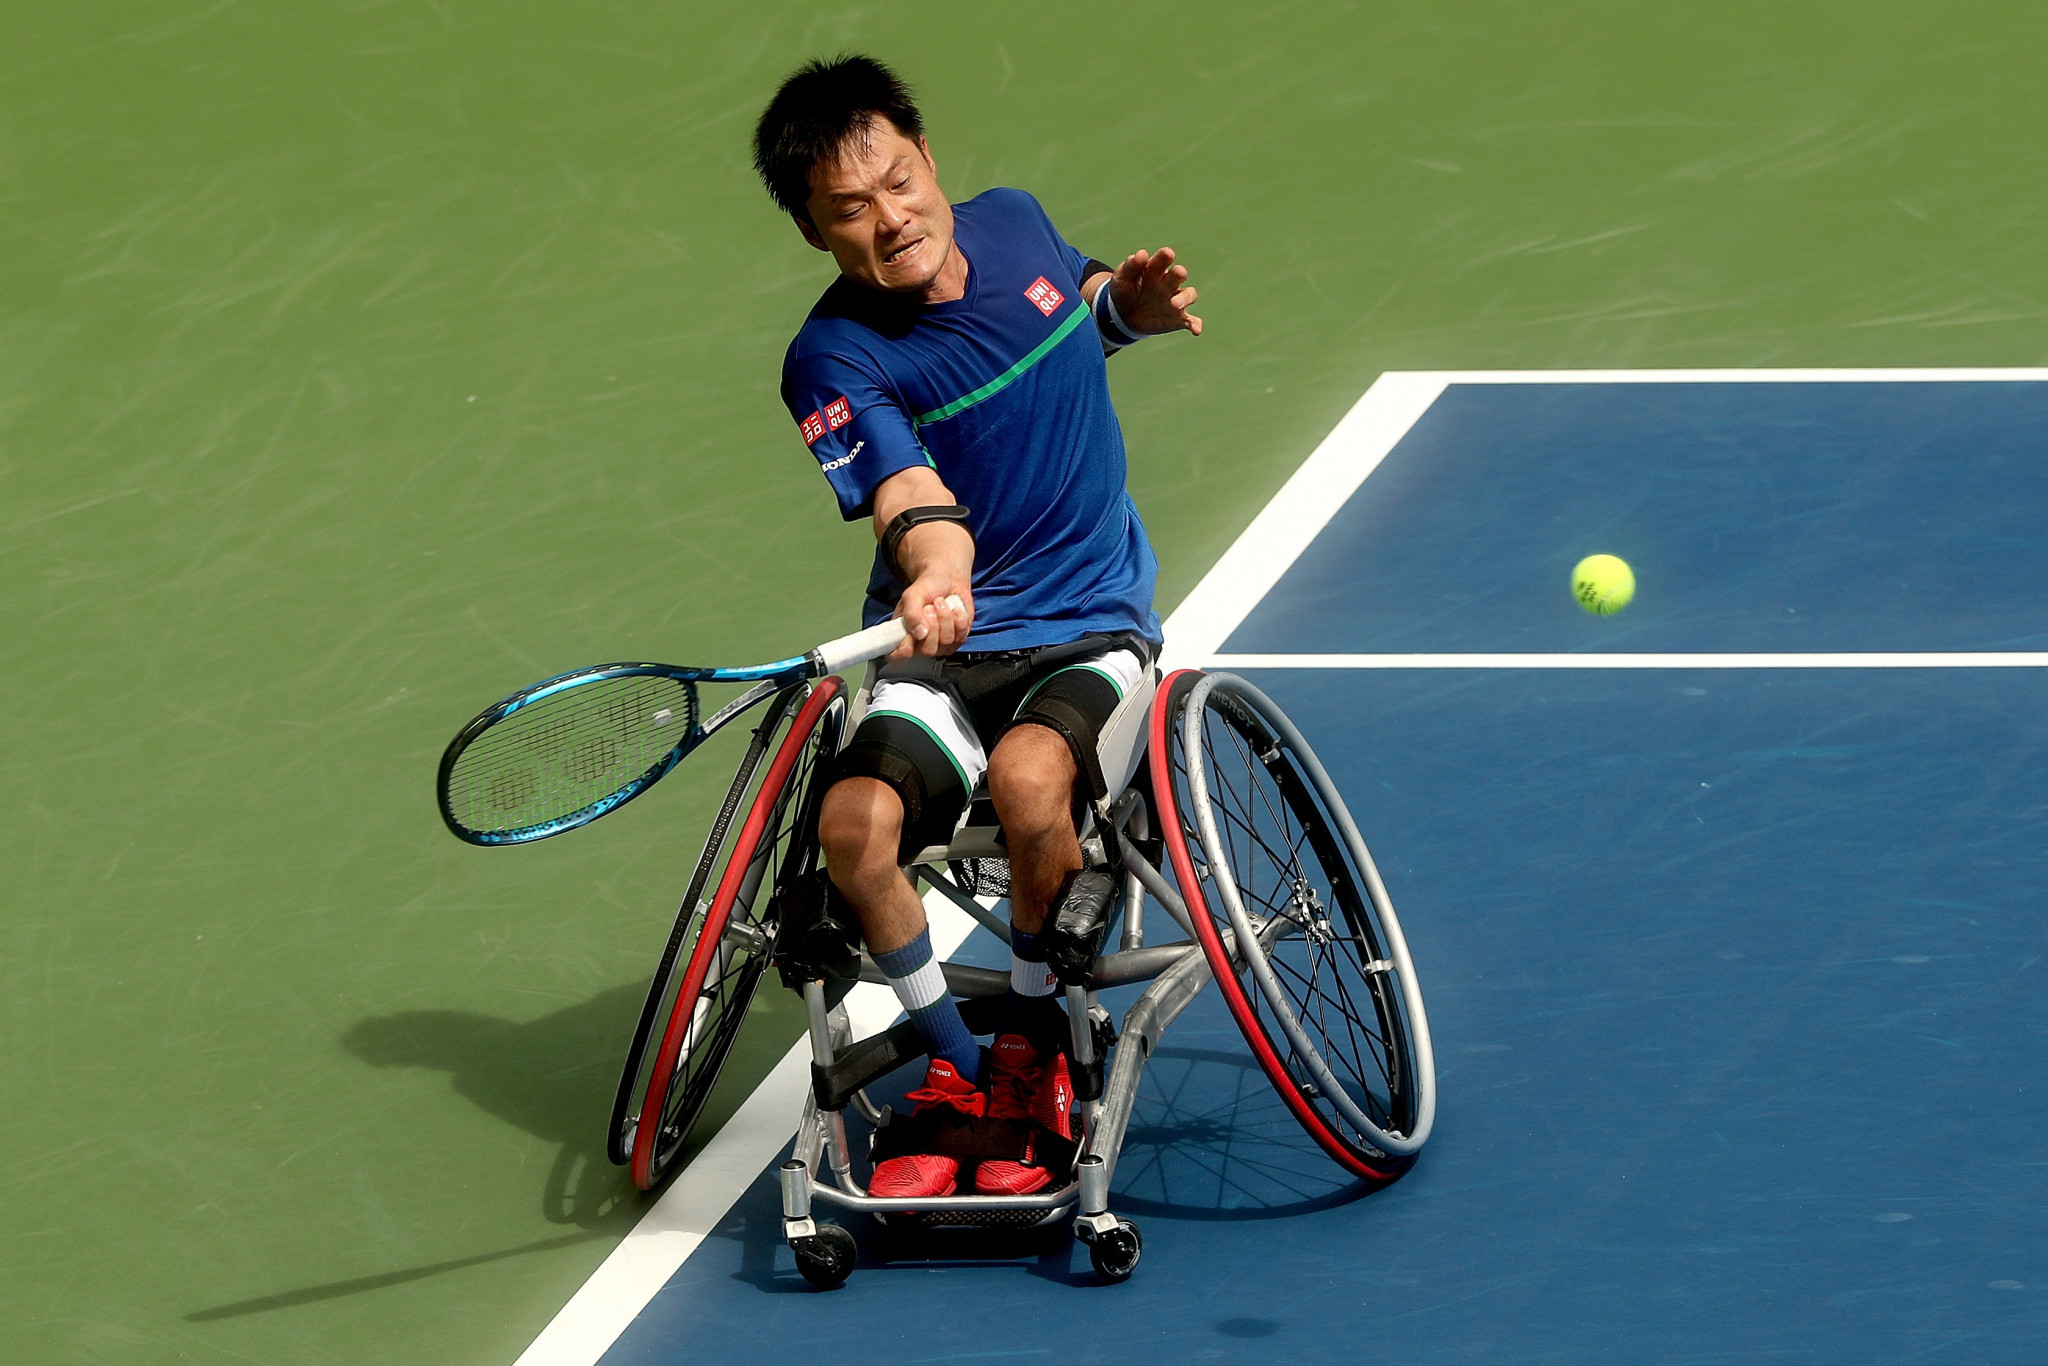 Top seeds victorious on opening day of US Open wheelchair tennis competitions